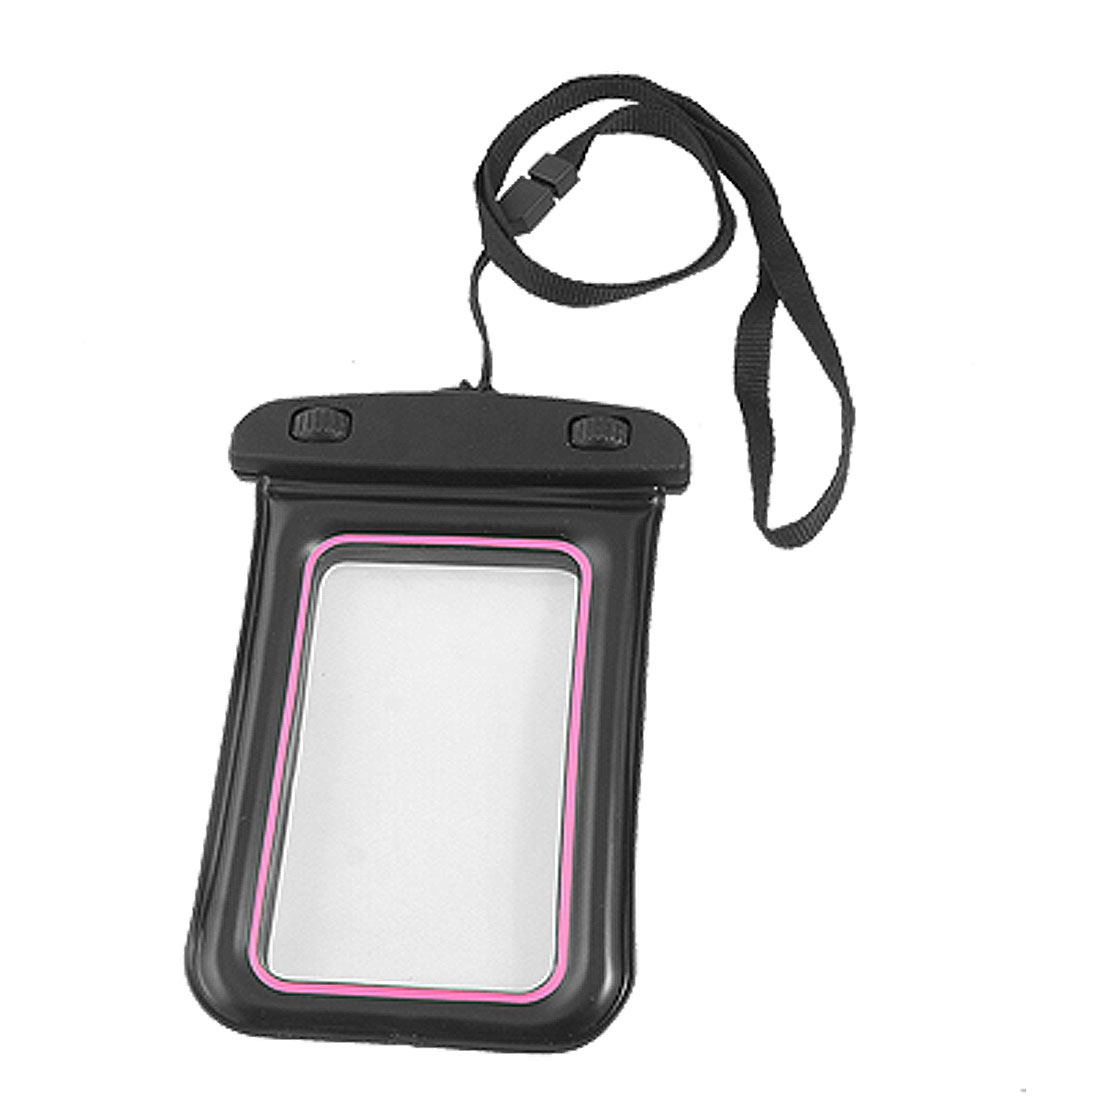 Water Resistant Bag Case Black Pink + Nylon Neck Strap for iPhone 4 4G 4S